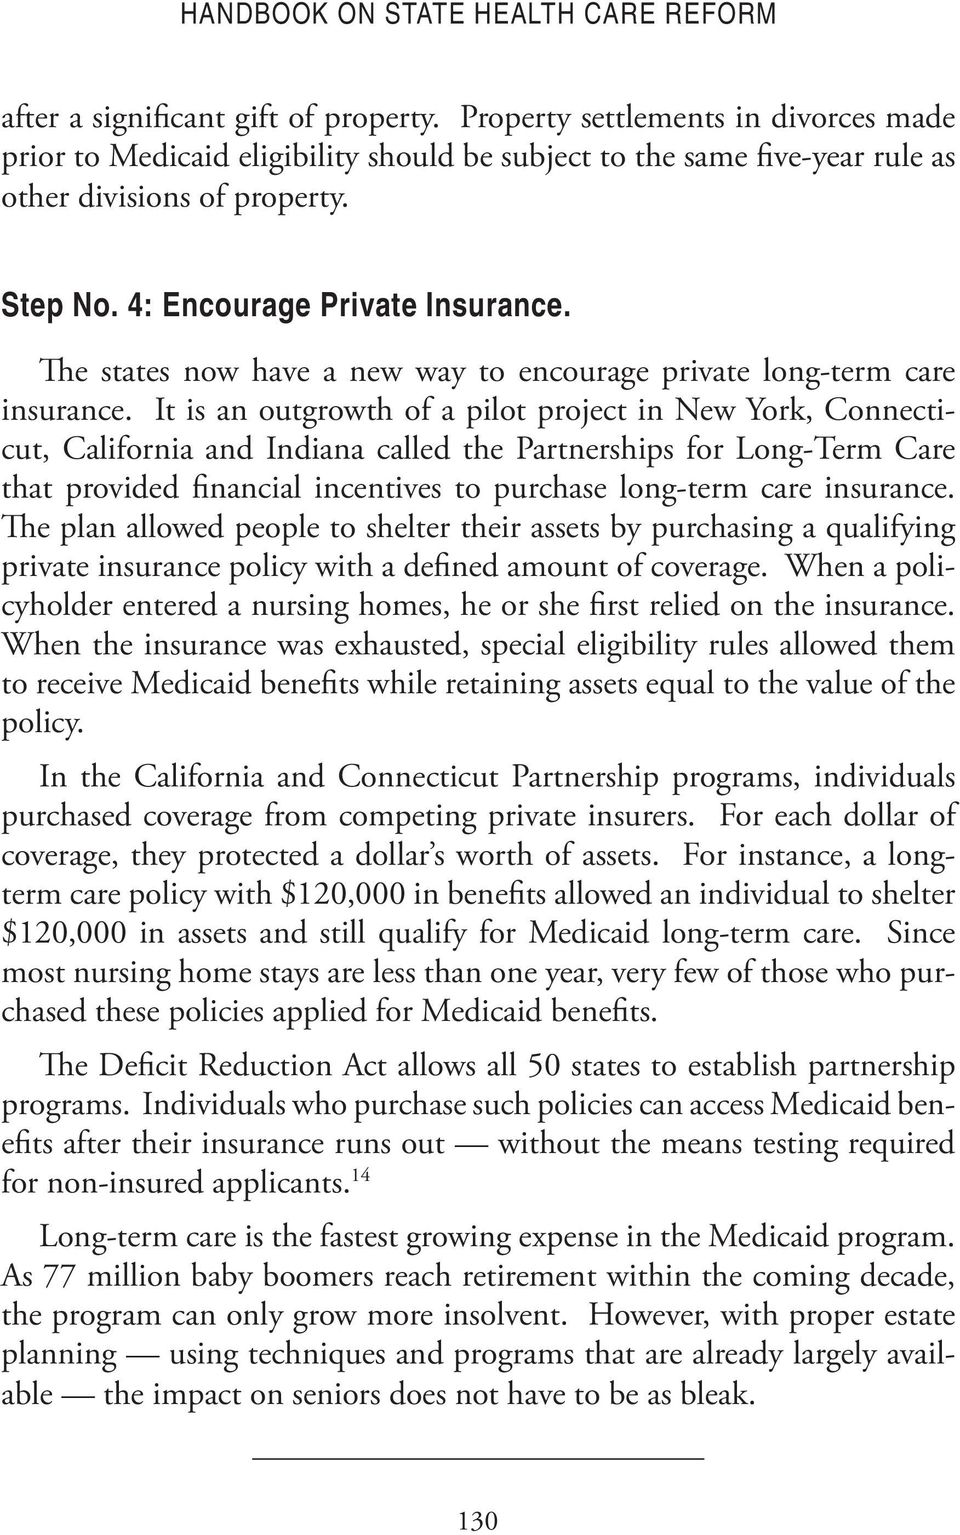 The states now have a new way to encourage private long-term care insurance.